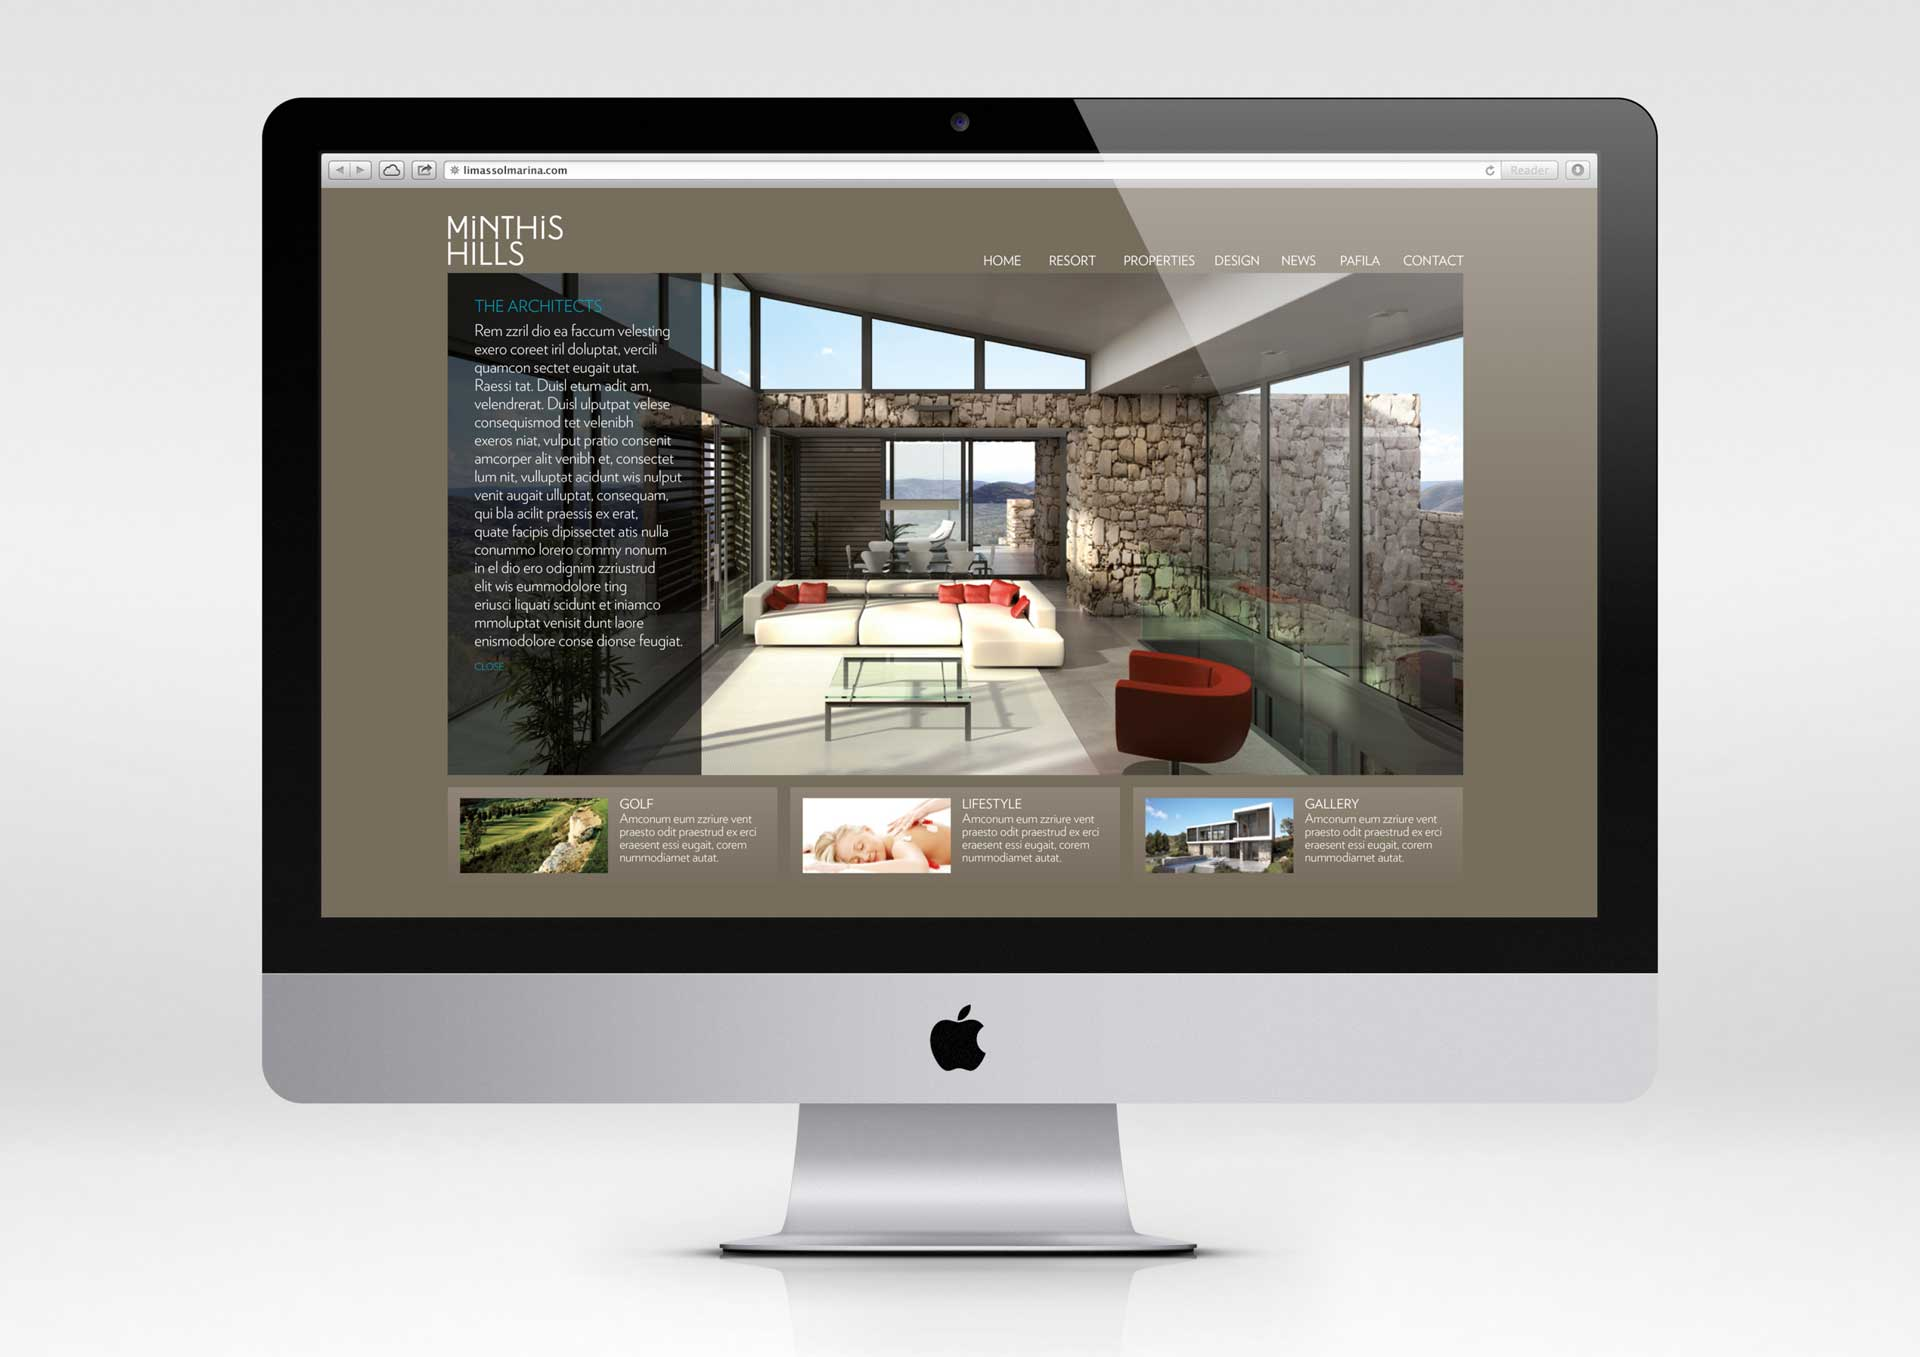 minthis-hills-property-website-4